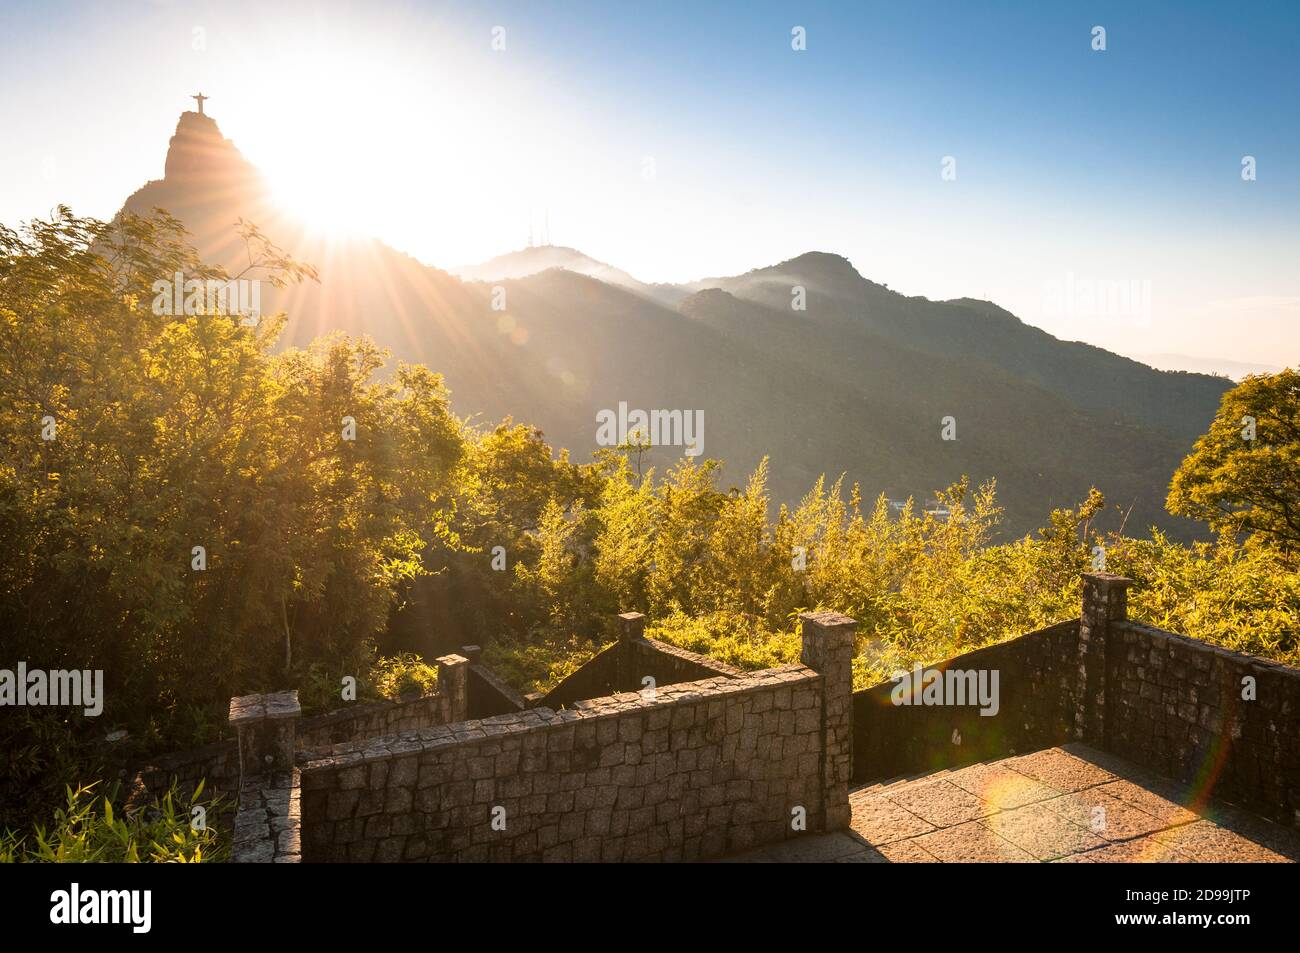 Beautiful Warm Sunset View in the Park With Corcovado Mountain in Rio de Janeiro Stock Photo